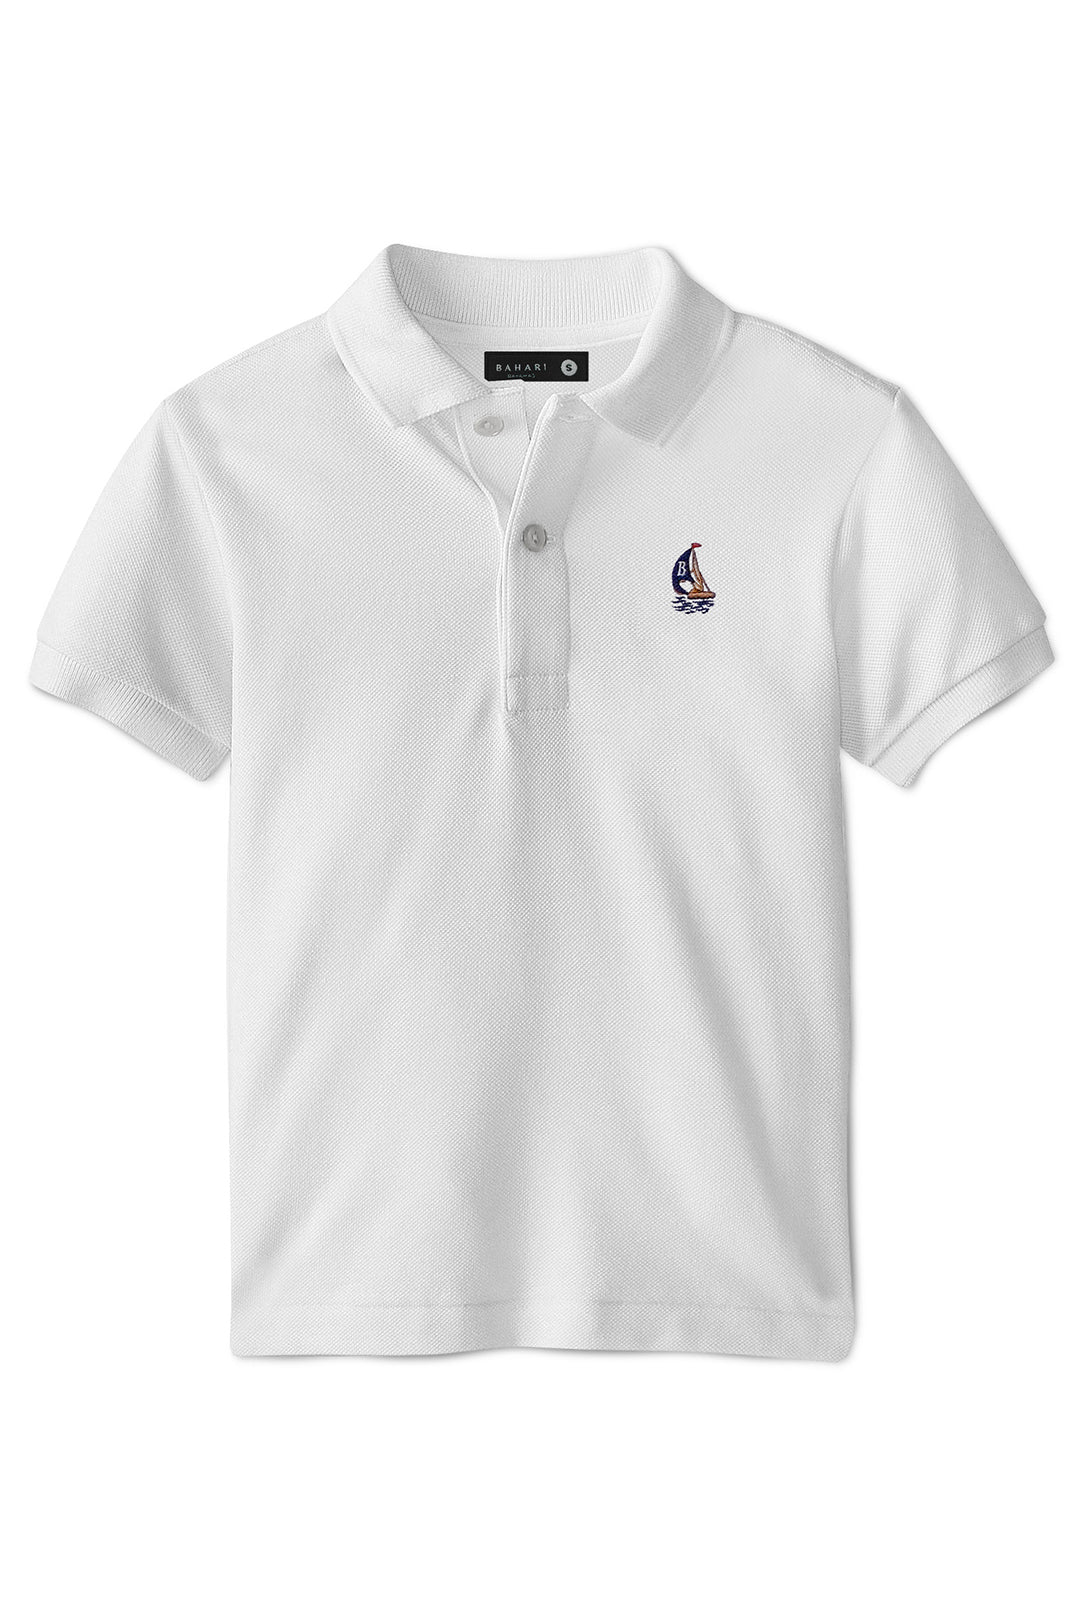 THE CLASSIC POLO- WHITE